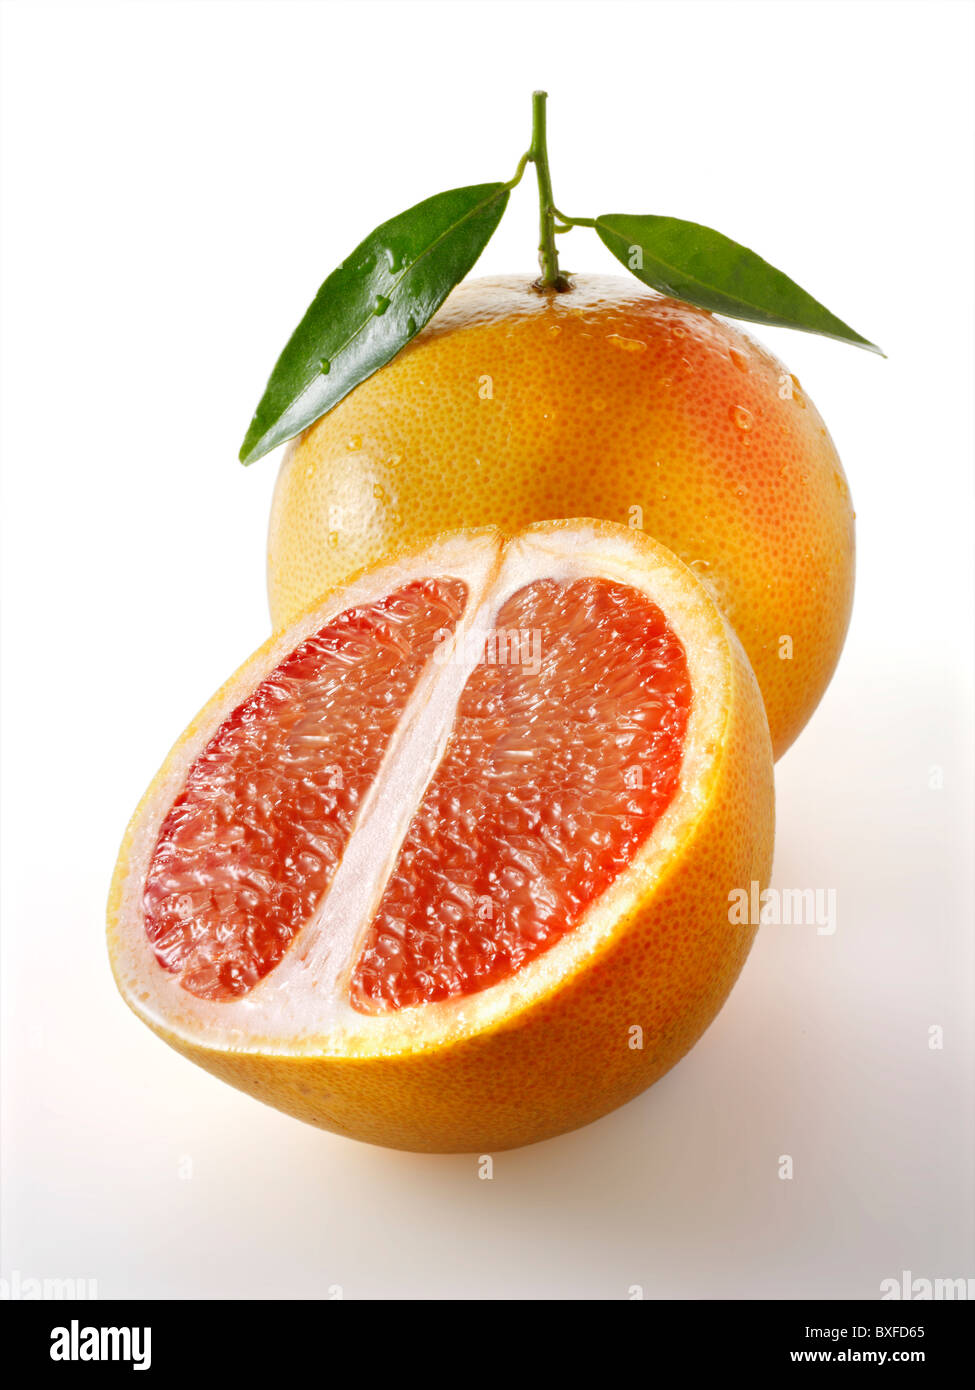 Fresh whole and cut pink grapefruit with leaves against a white background - Stock Image